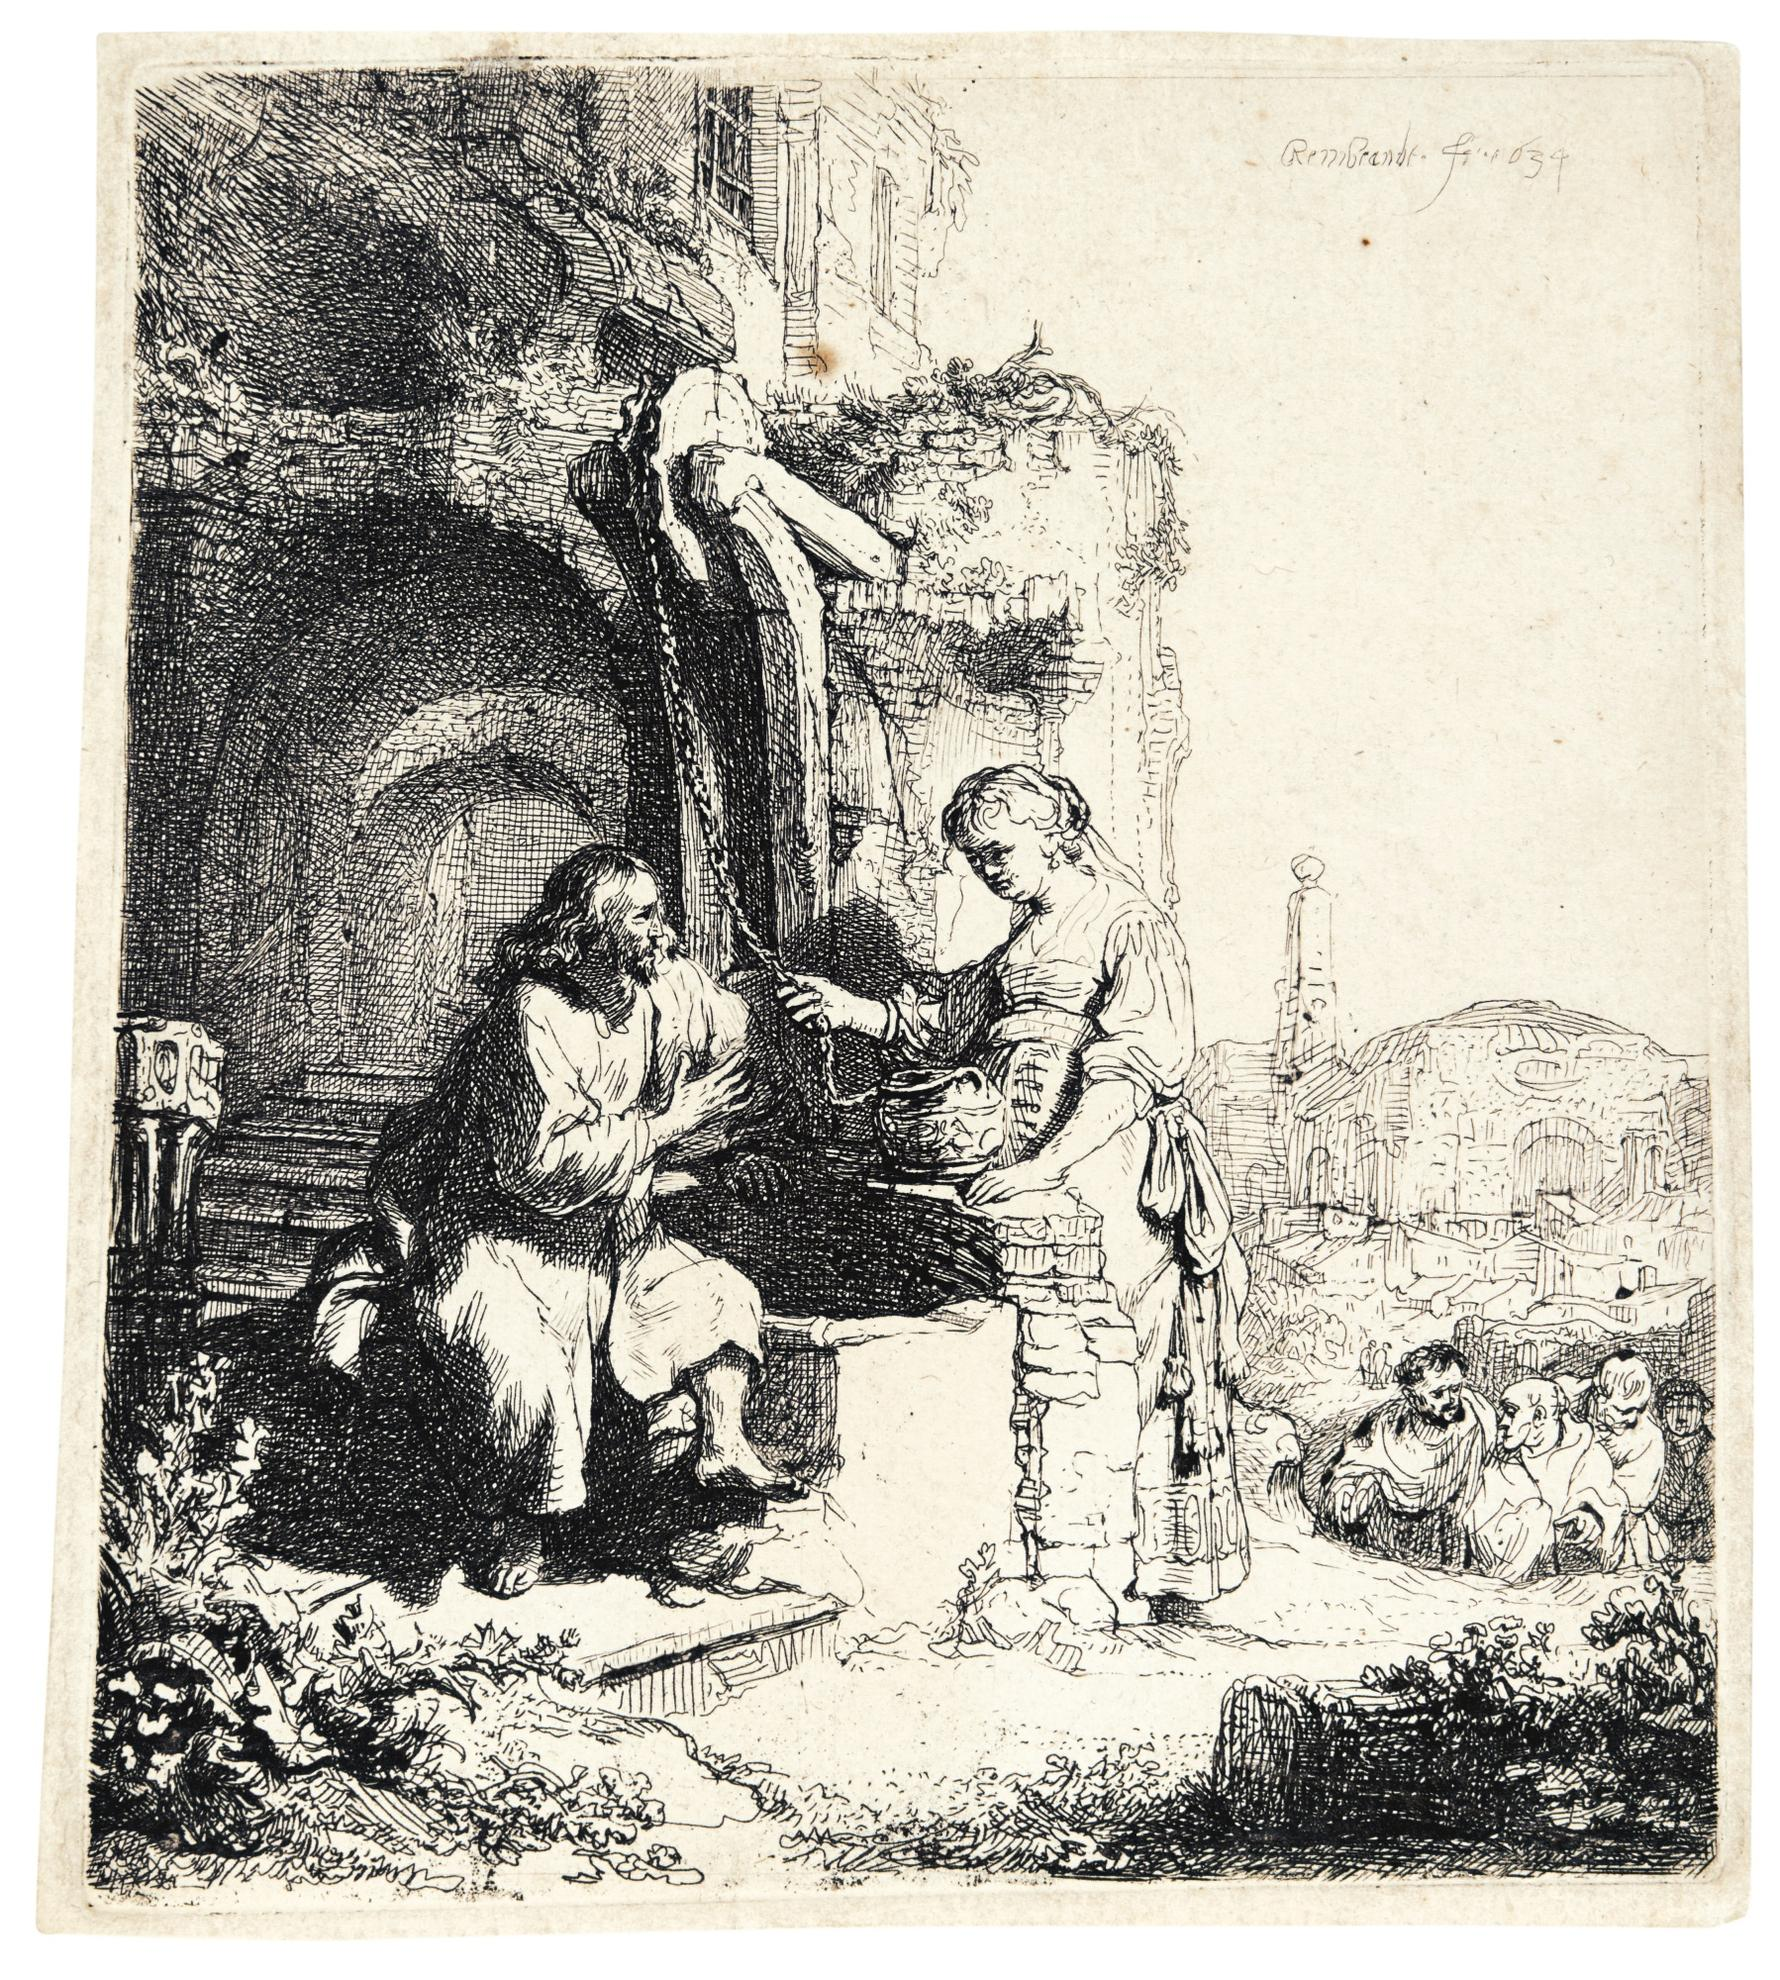 Rembrandt van Rijn-Christ And The Woman Of Samaria Among Ruins  (B., Holl. 71; New Holl. 127; H. 122)-1634